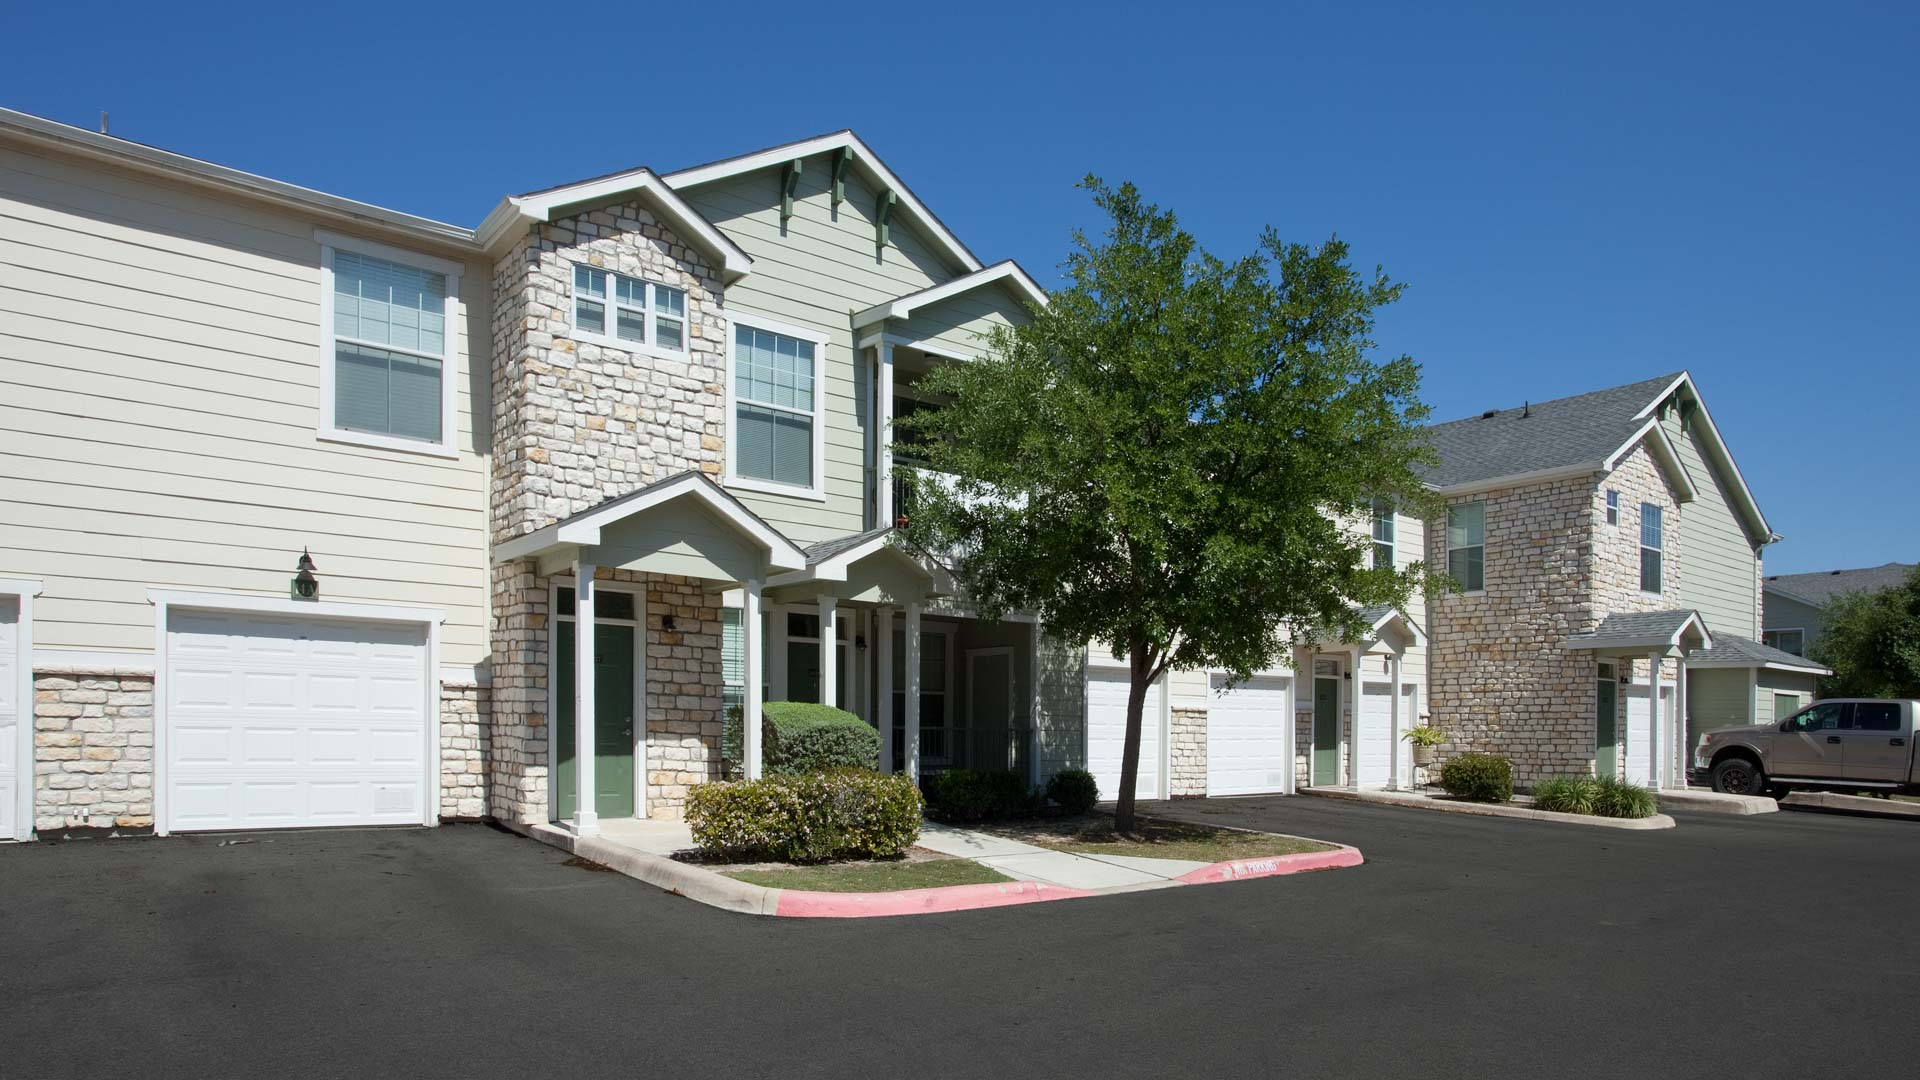 Springs at Live Oak in Live Oak, Tx townhome apartments